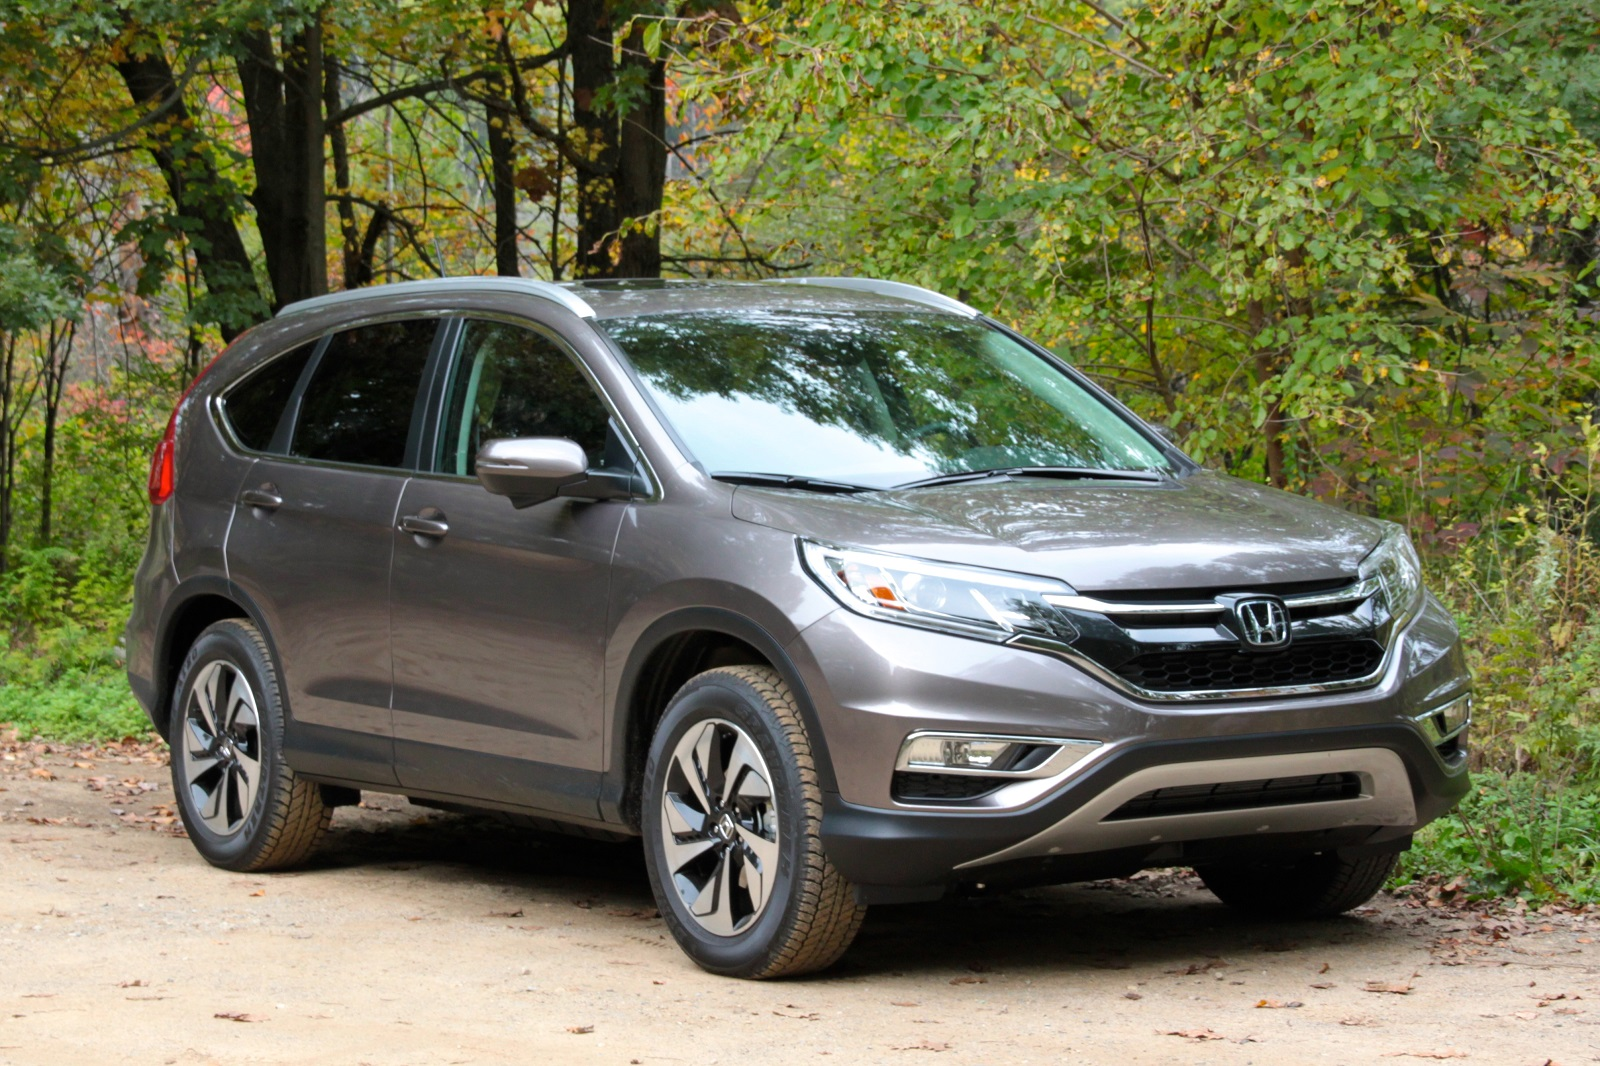 2015 honda cr v gas mileage test of updated crossover suv for Is a honda crv a suv